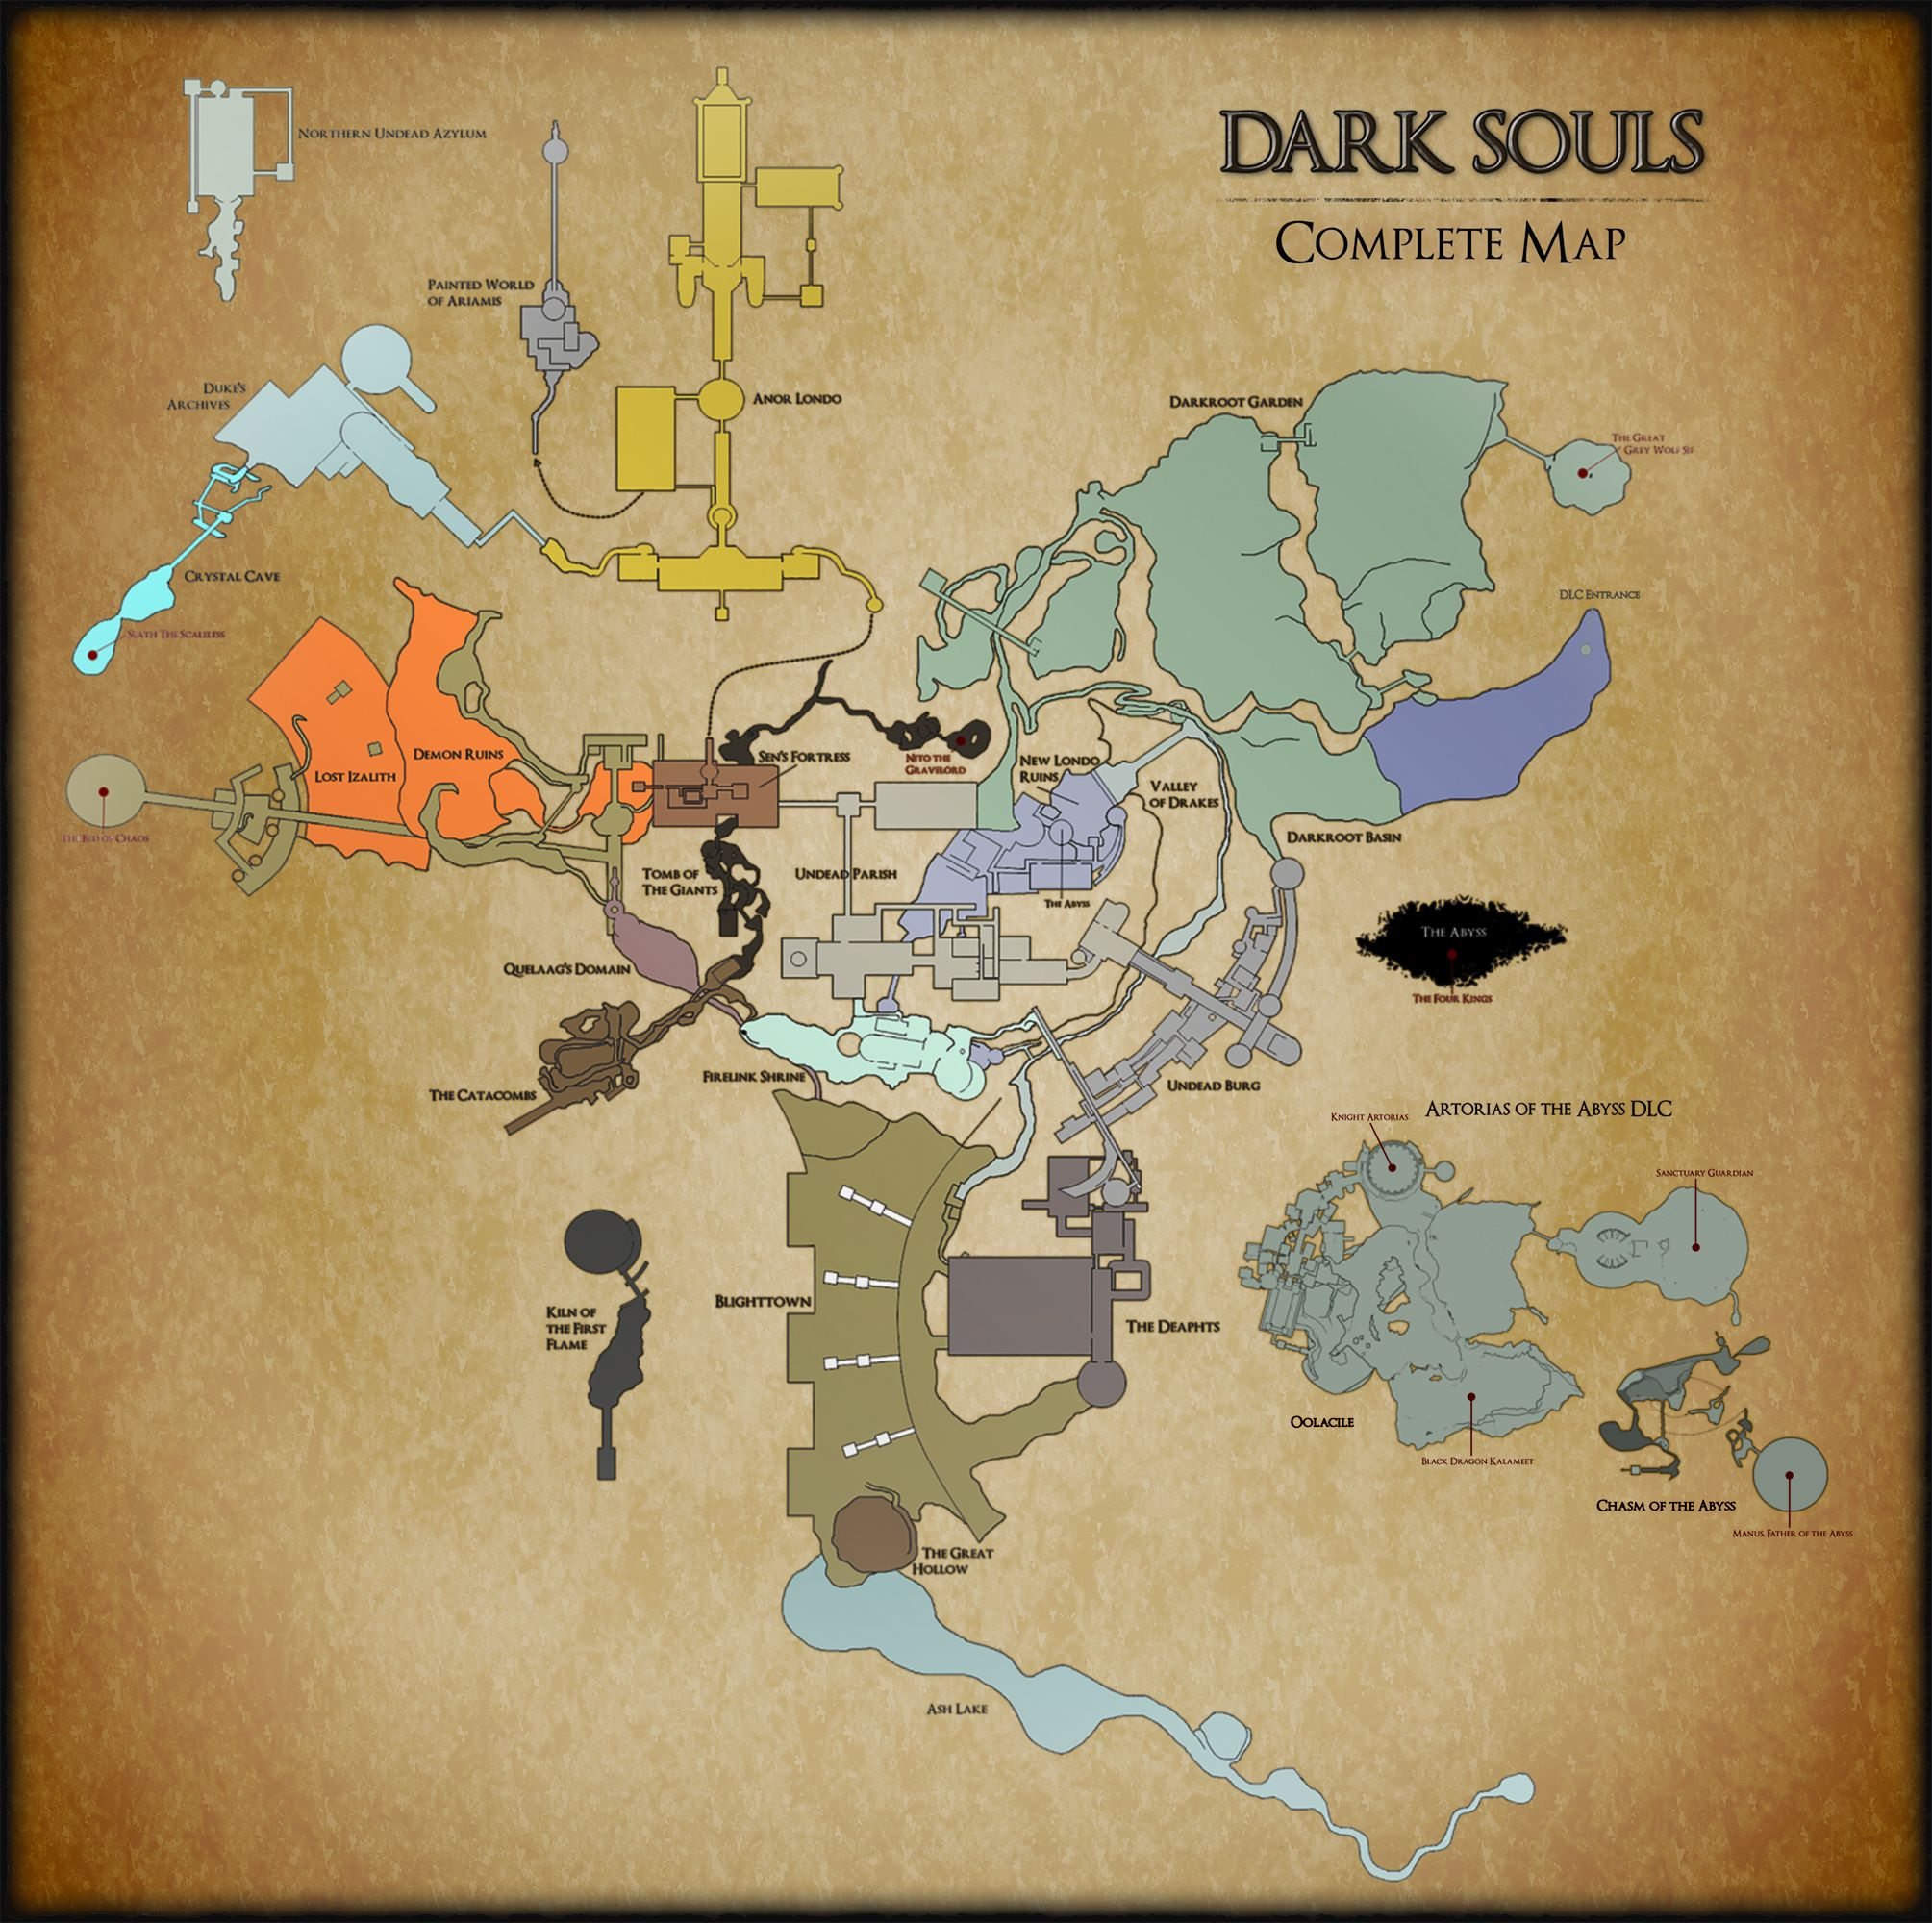 The first full Map incl. all DLC Content of the first Dark Souls ...